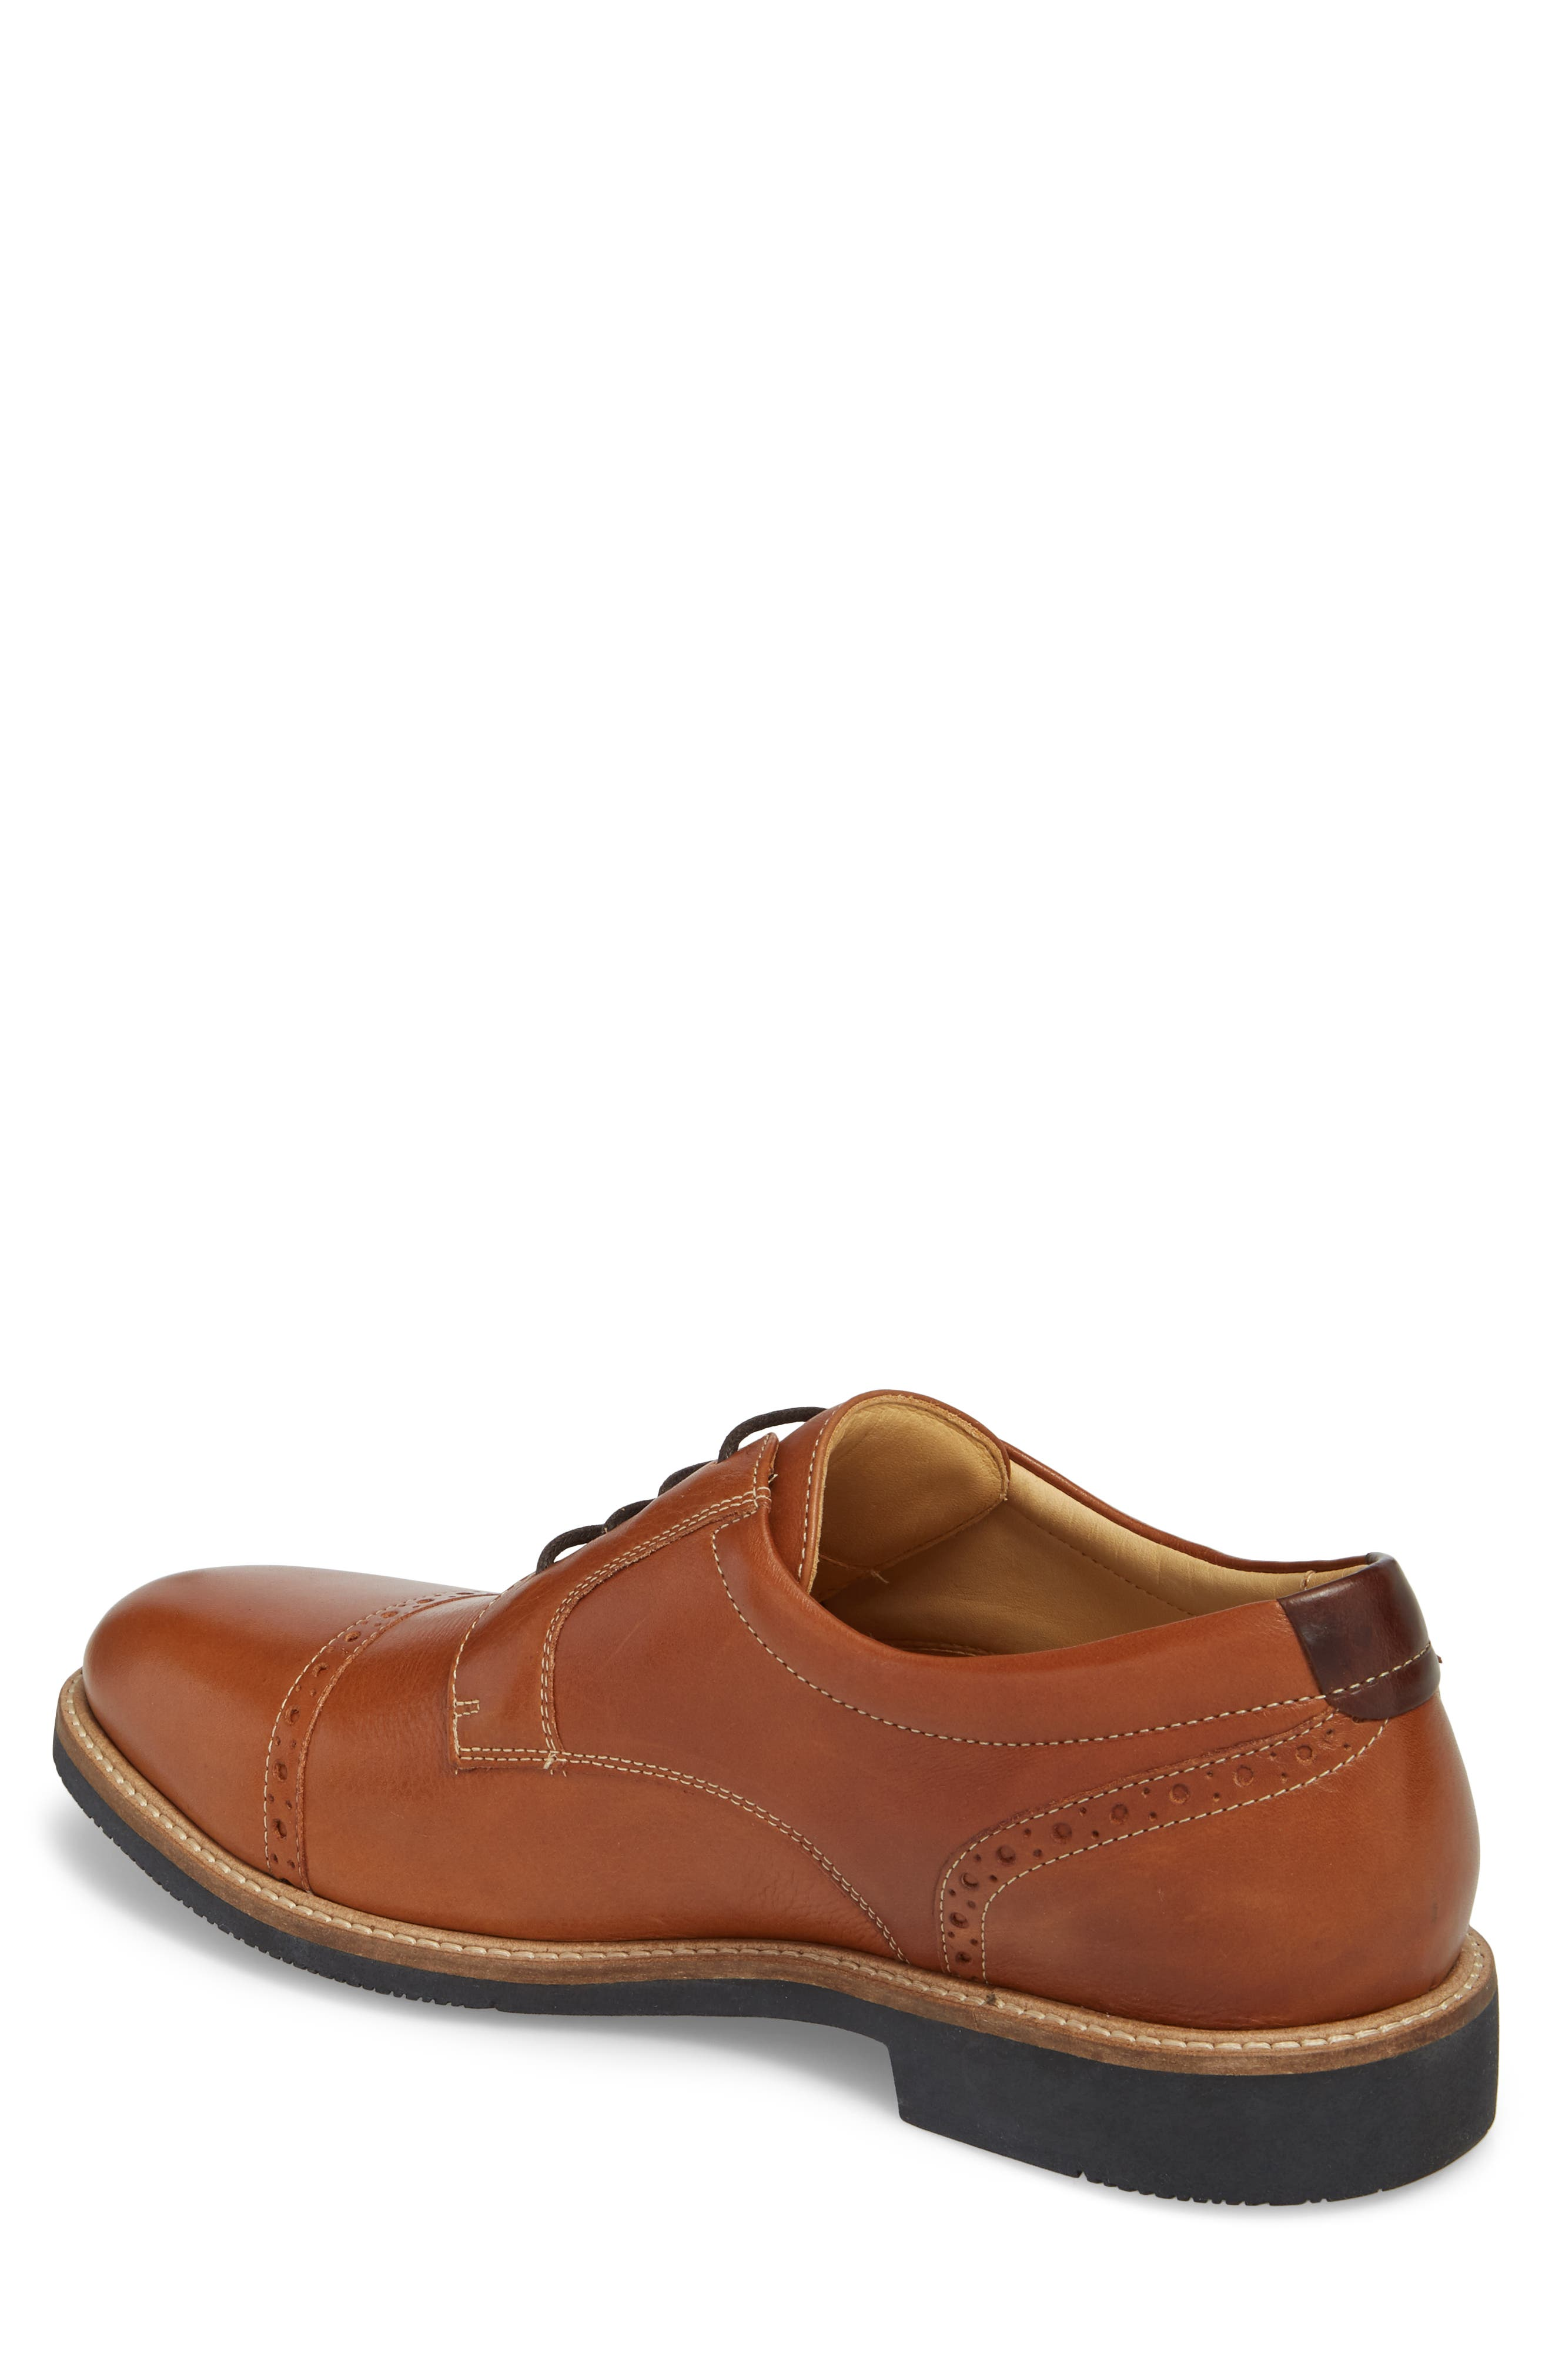 JOHNSTON & MURPHY,                             Barlow Cap Toe Derby,                             Alternate thumbnail 2, color,                             TAN LEATHER